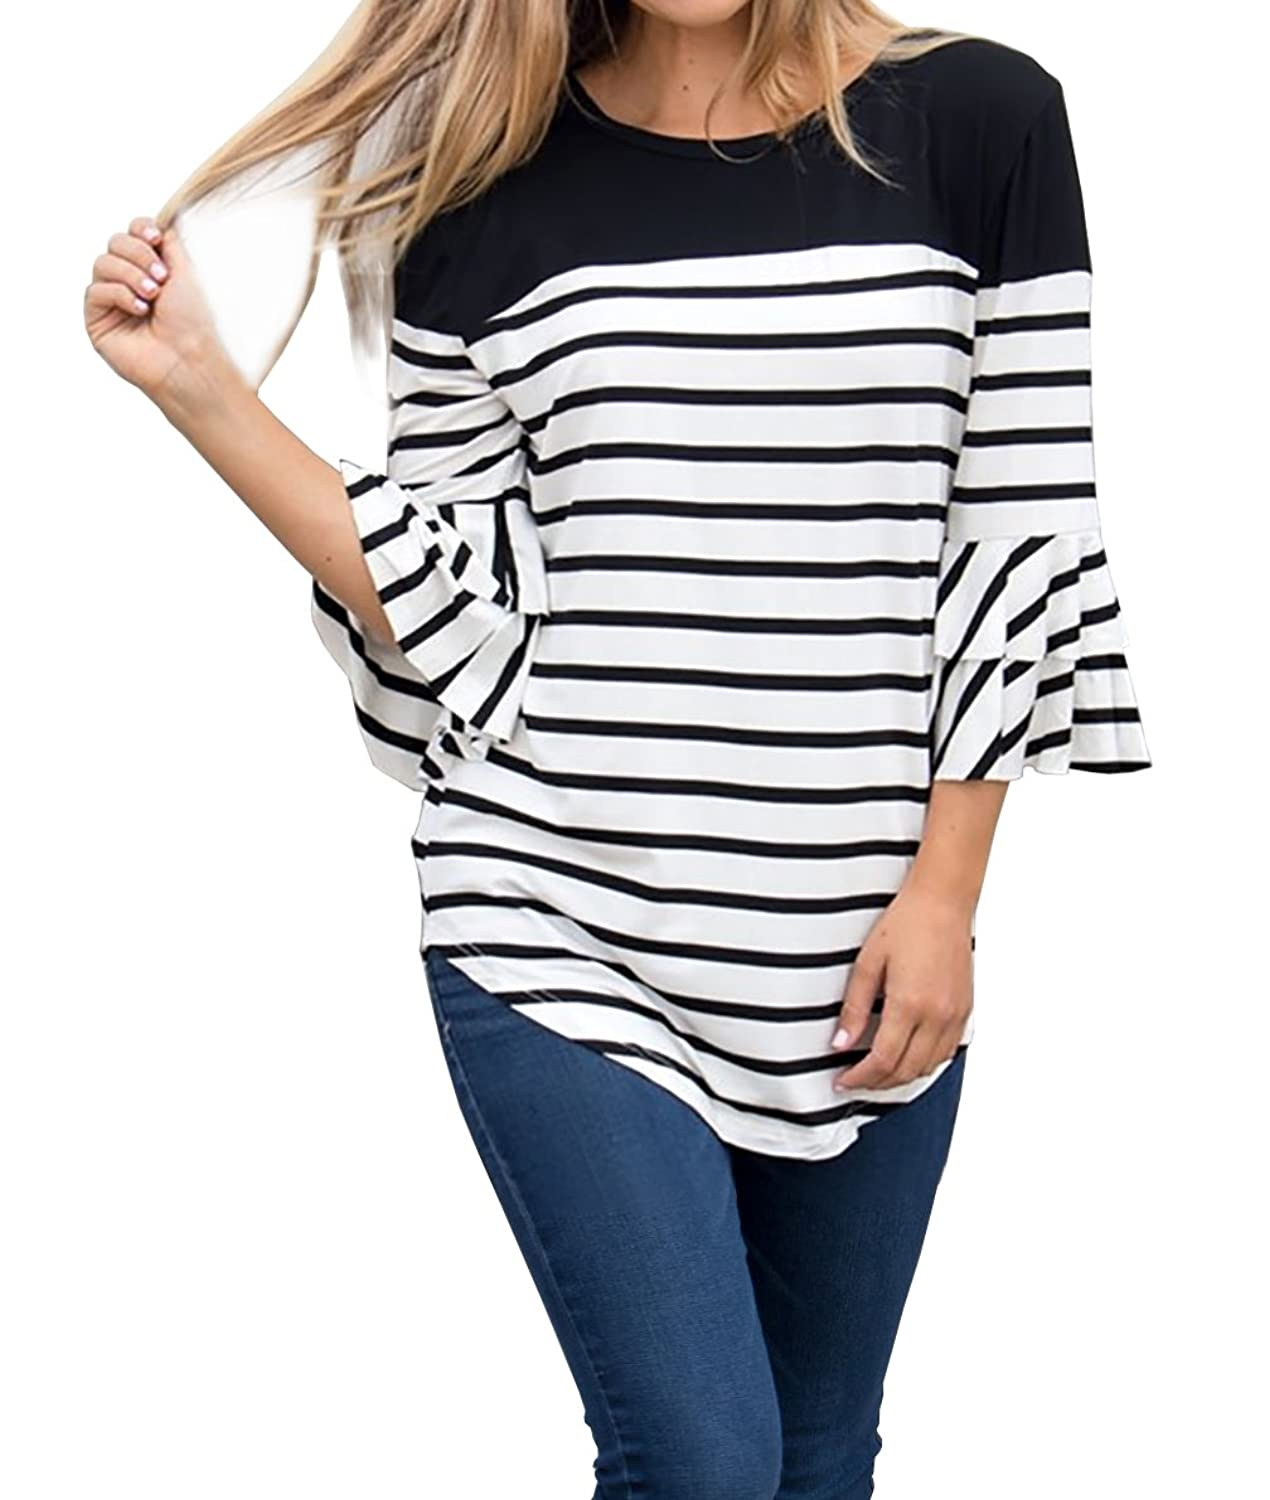 9ee907879 FISACE Womens 3/4 Ruffle Sleeve Striped Curved Hem Crewneck Tunic Tops  Blouse Plus Size